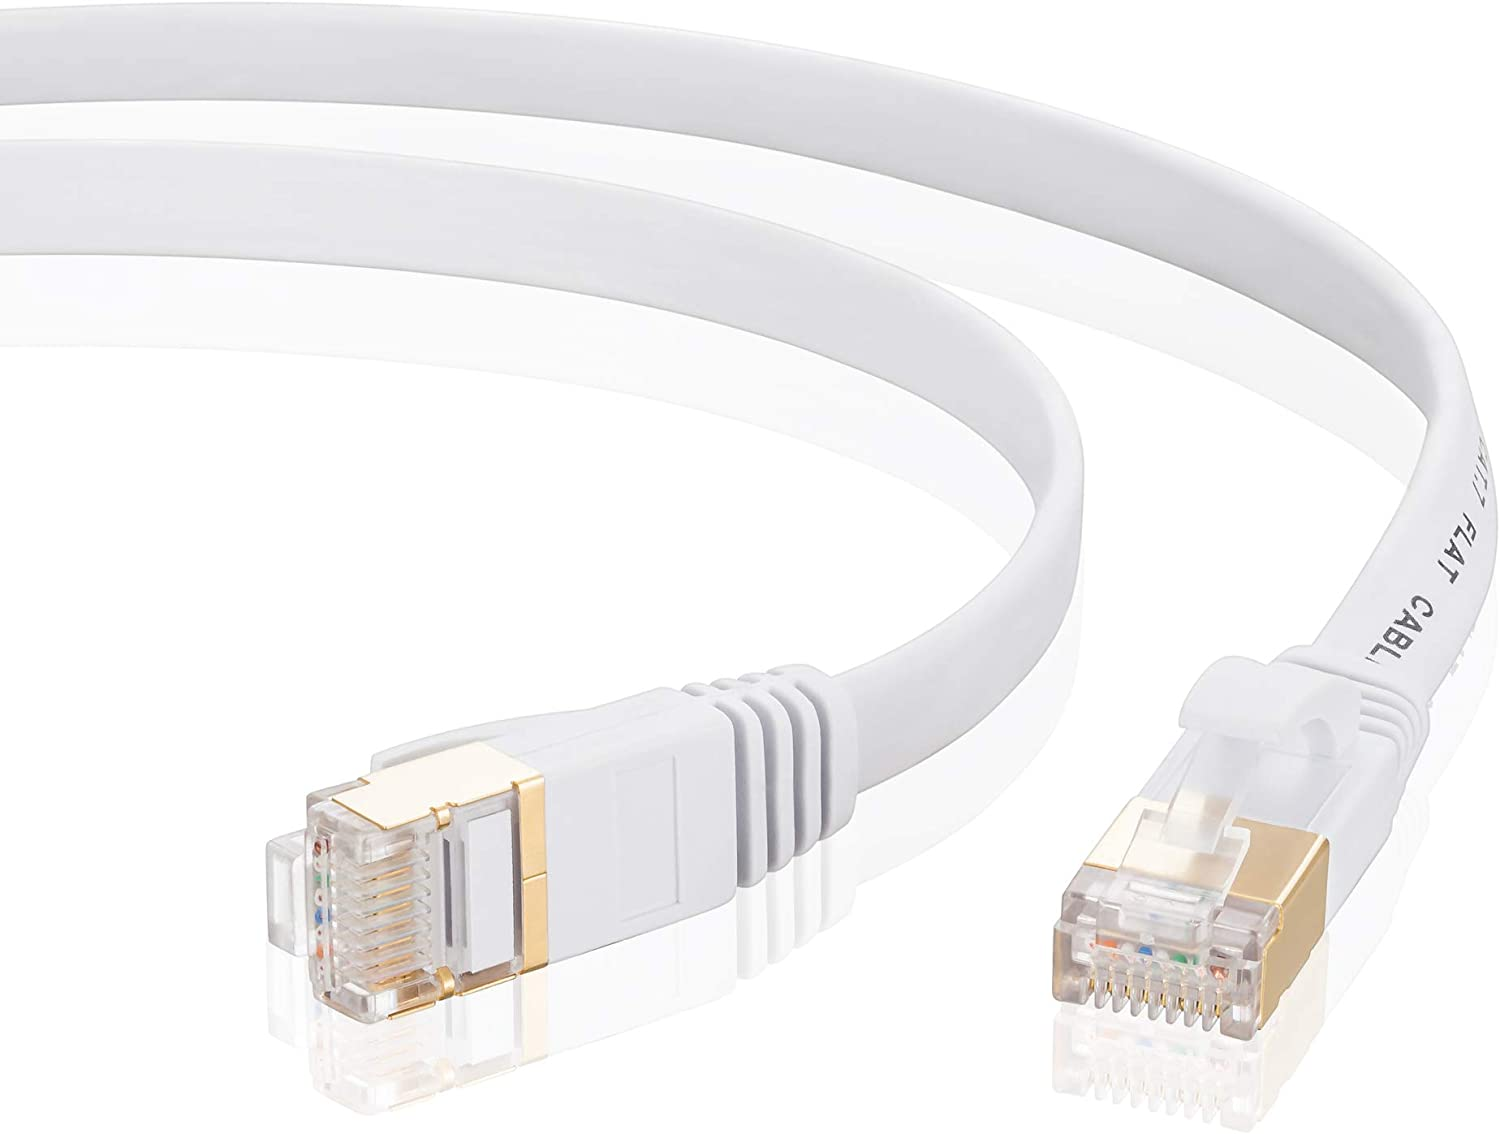 White PS4 PS3 PC Laptop Router Mac PS2 Cat 7 Ethernet Cable 25Ft Xbox 360 Tanbin Cat7 RJ45 Network Patch Cable Flat 10 Gigabit 600Mhz LAN Wire Cable Cord Shielded for Modem